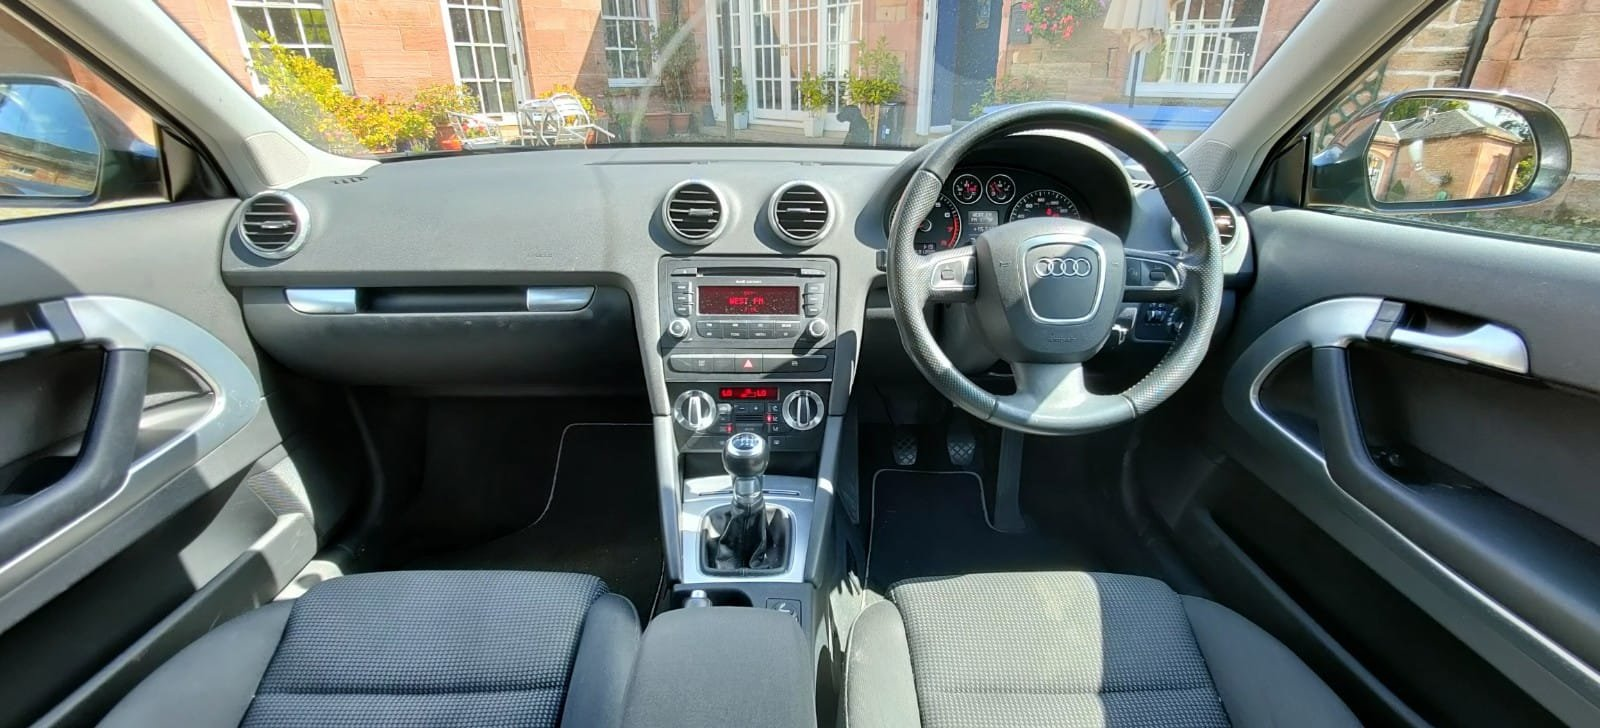 Audi, A3, TFSI Sport, 2010, 1.8T, Superb Condition For Sale (picture 2 of 5)